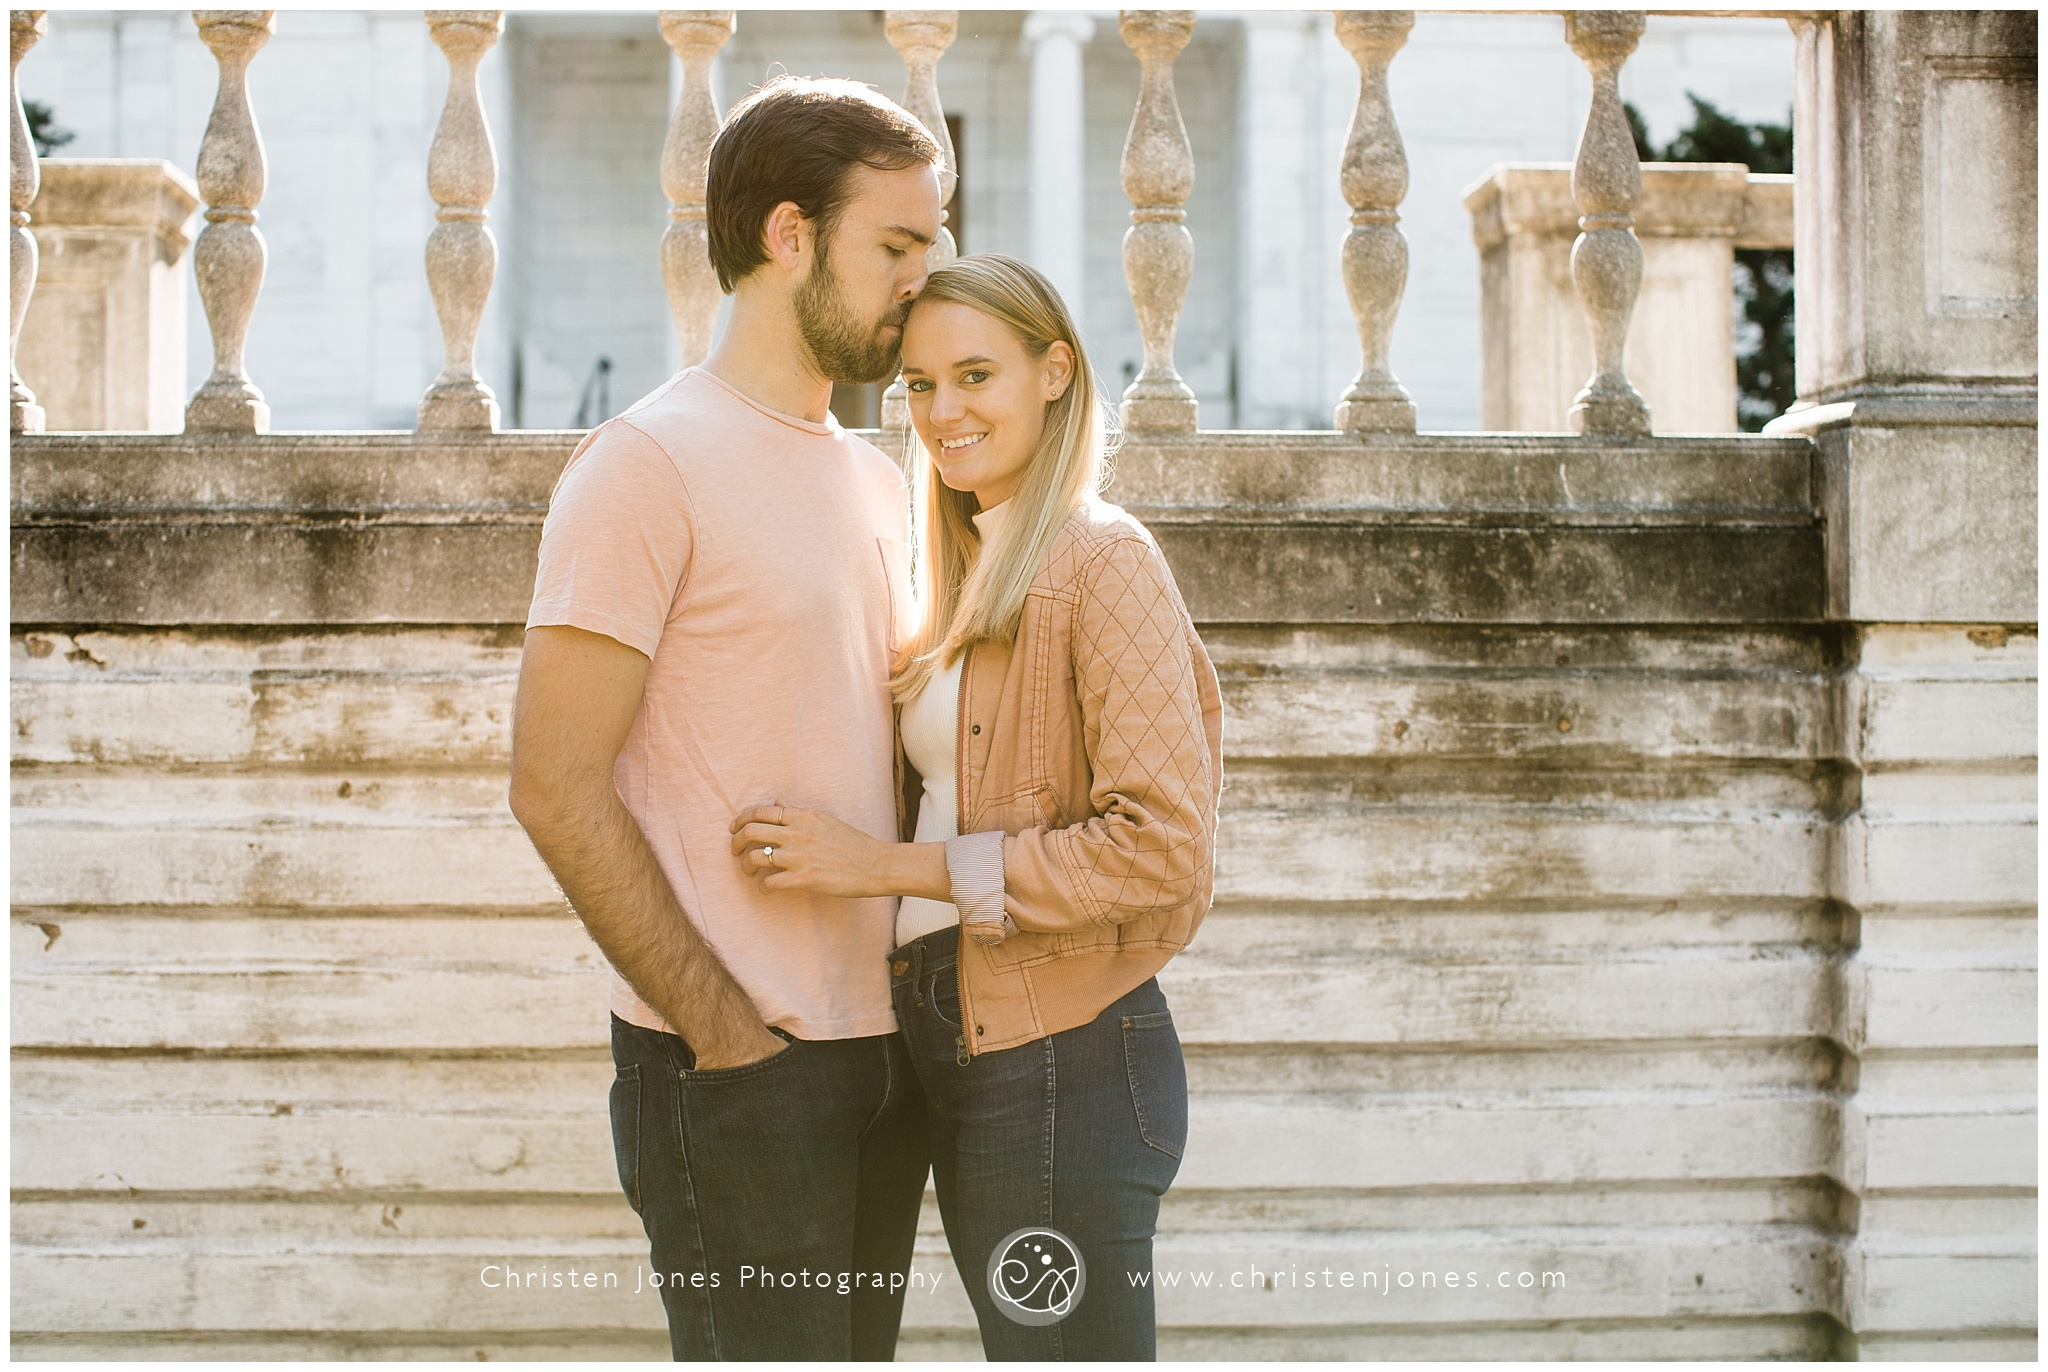 engaged,engaged in memphis,engagement,engagement photographer,engagement photography,i do,memphis,memphis bride,memphis wedding photography,memphs wedding,she said yes,